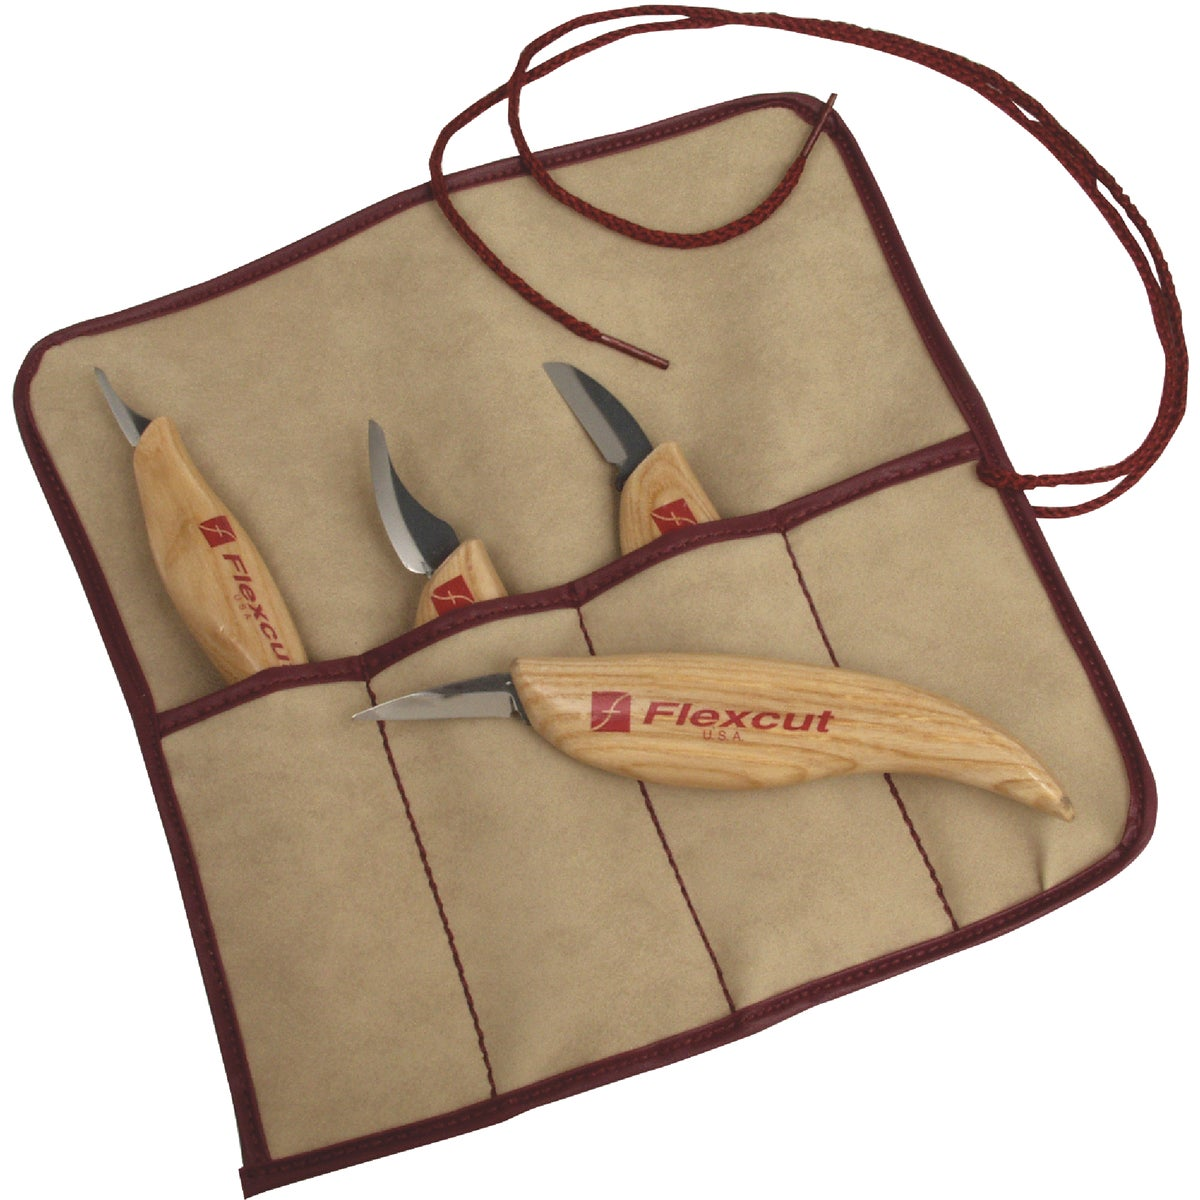 CARVING KNIFE SET - KN100 by Flexcut Tool Co